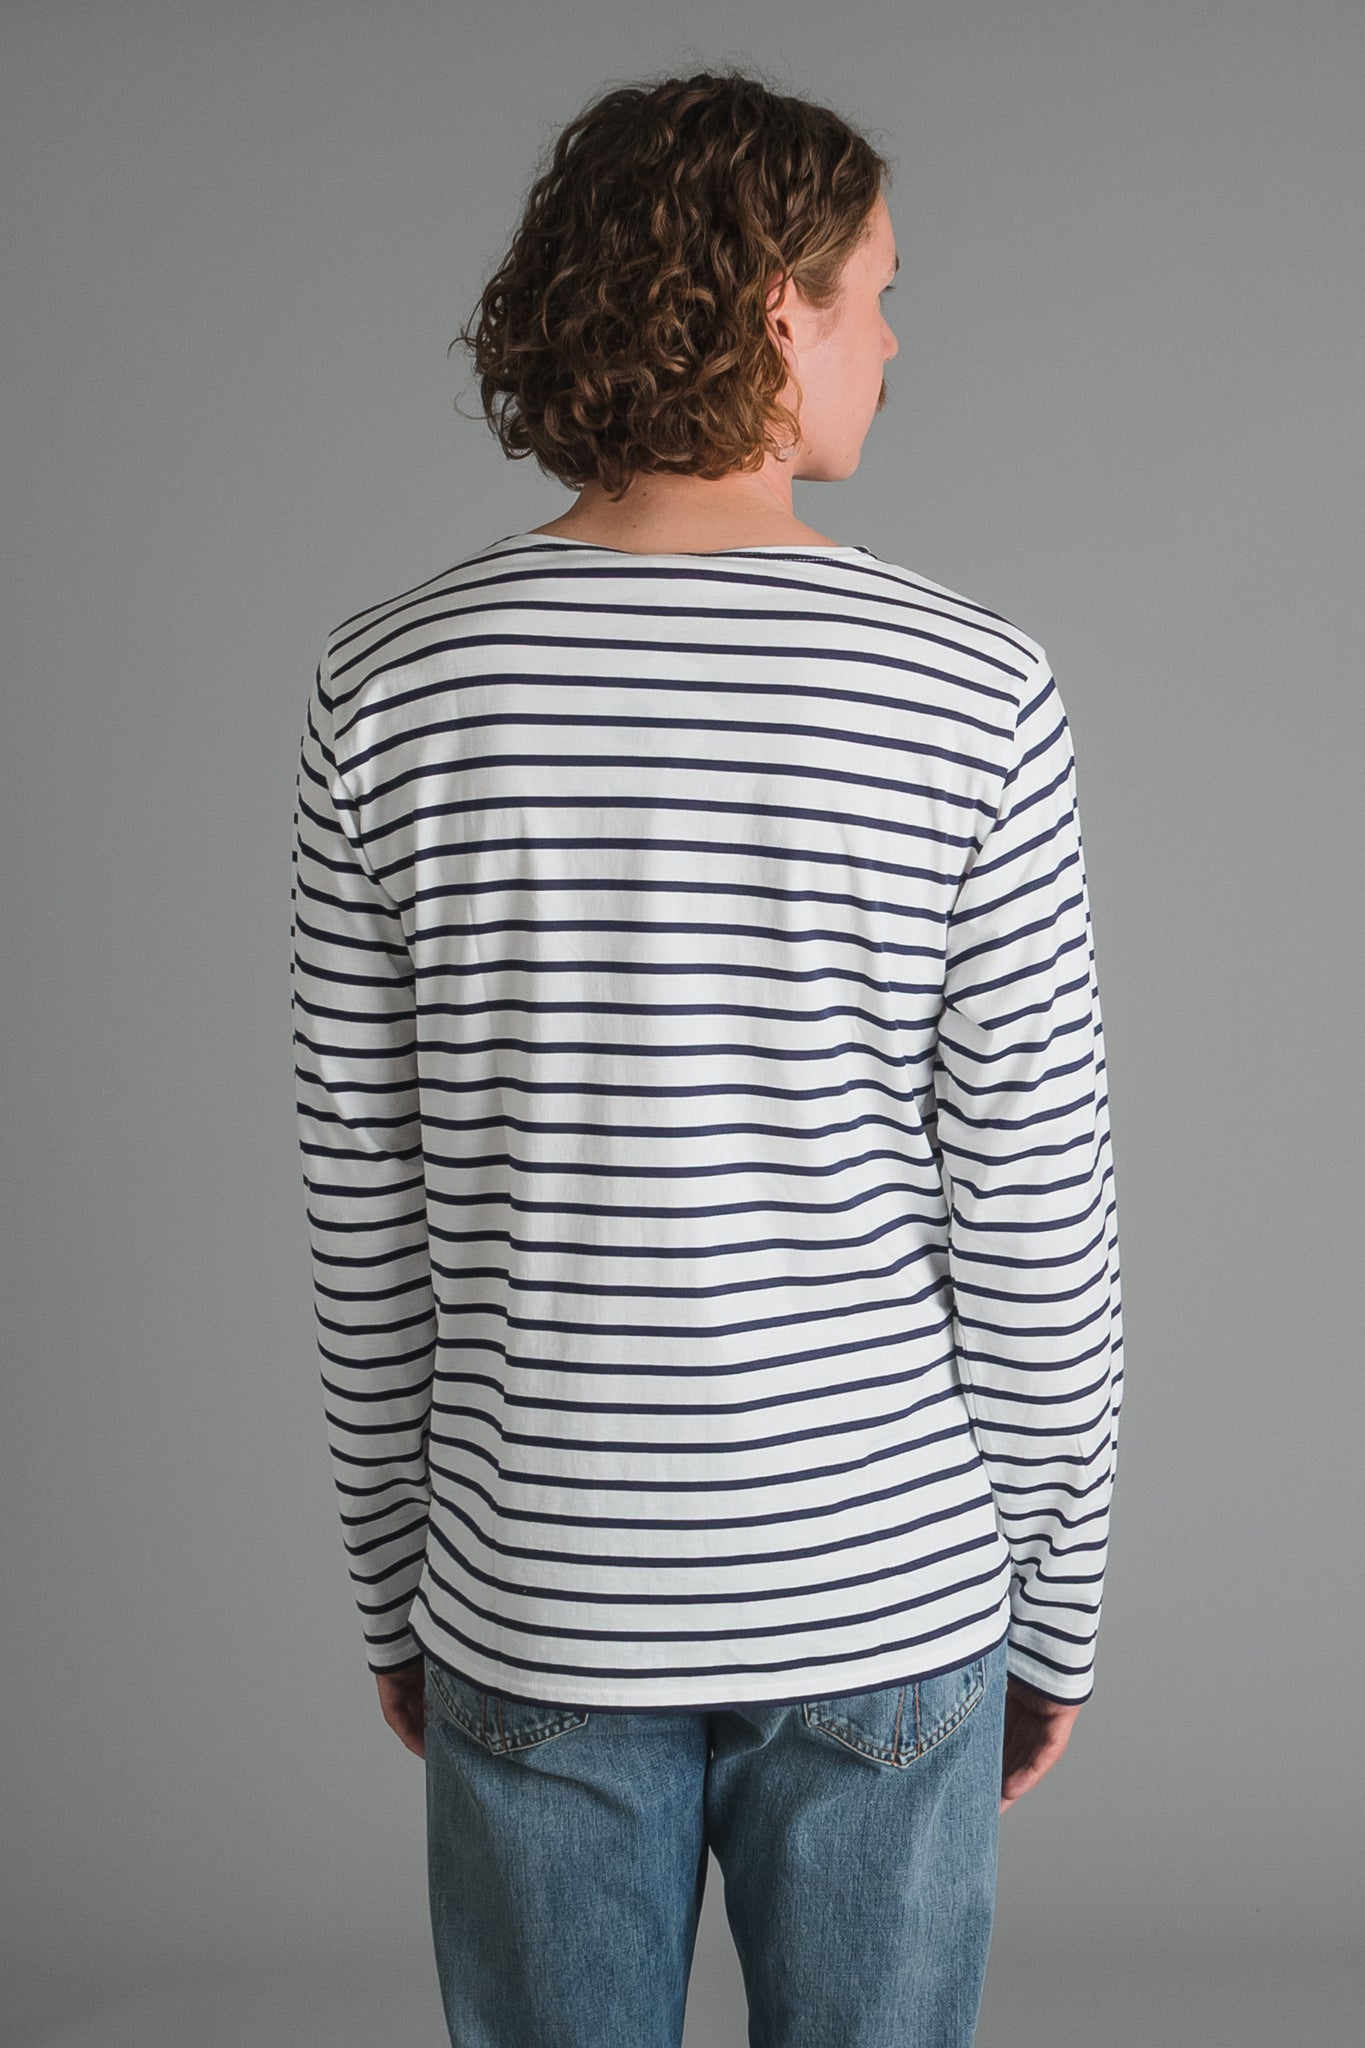 Armor Lux Sailor Shirt - blue striped I INCH""